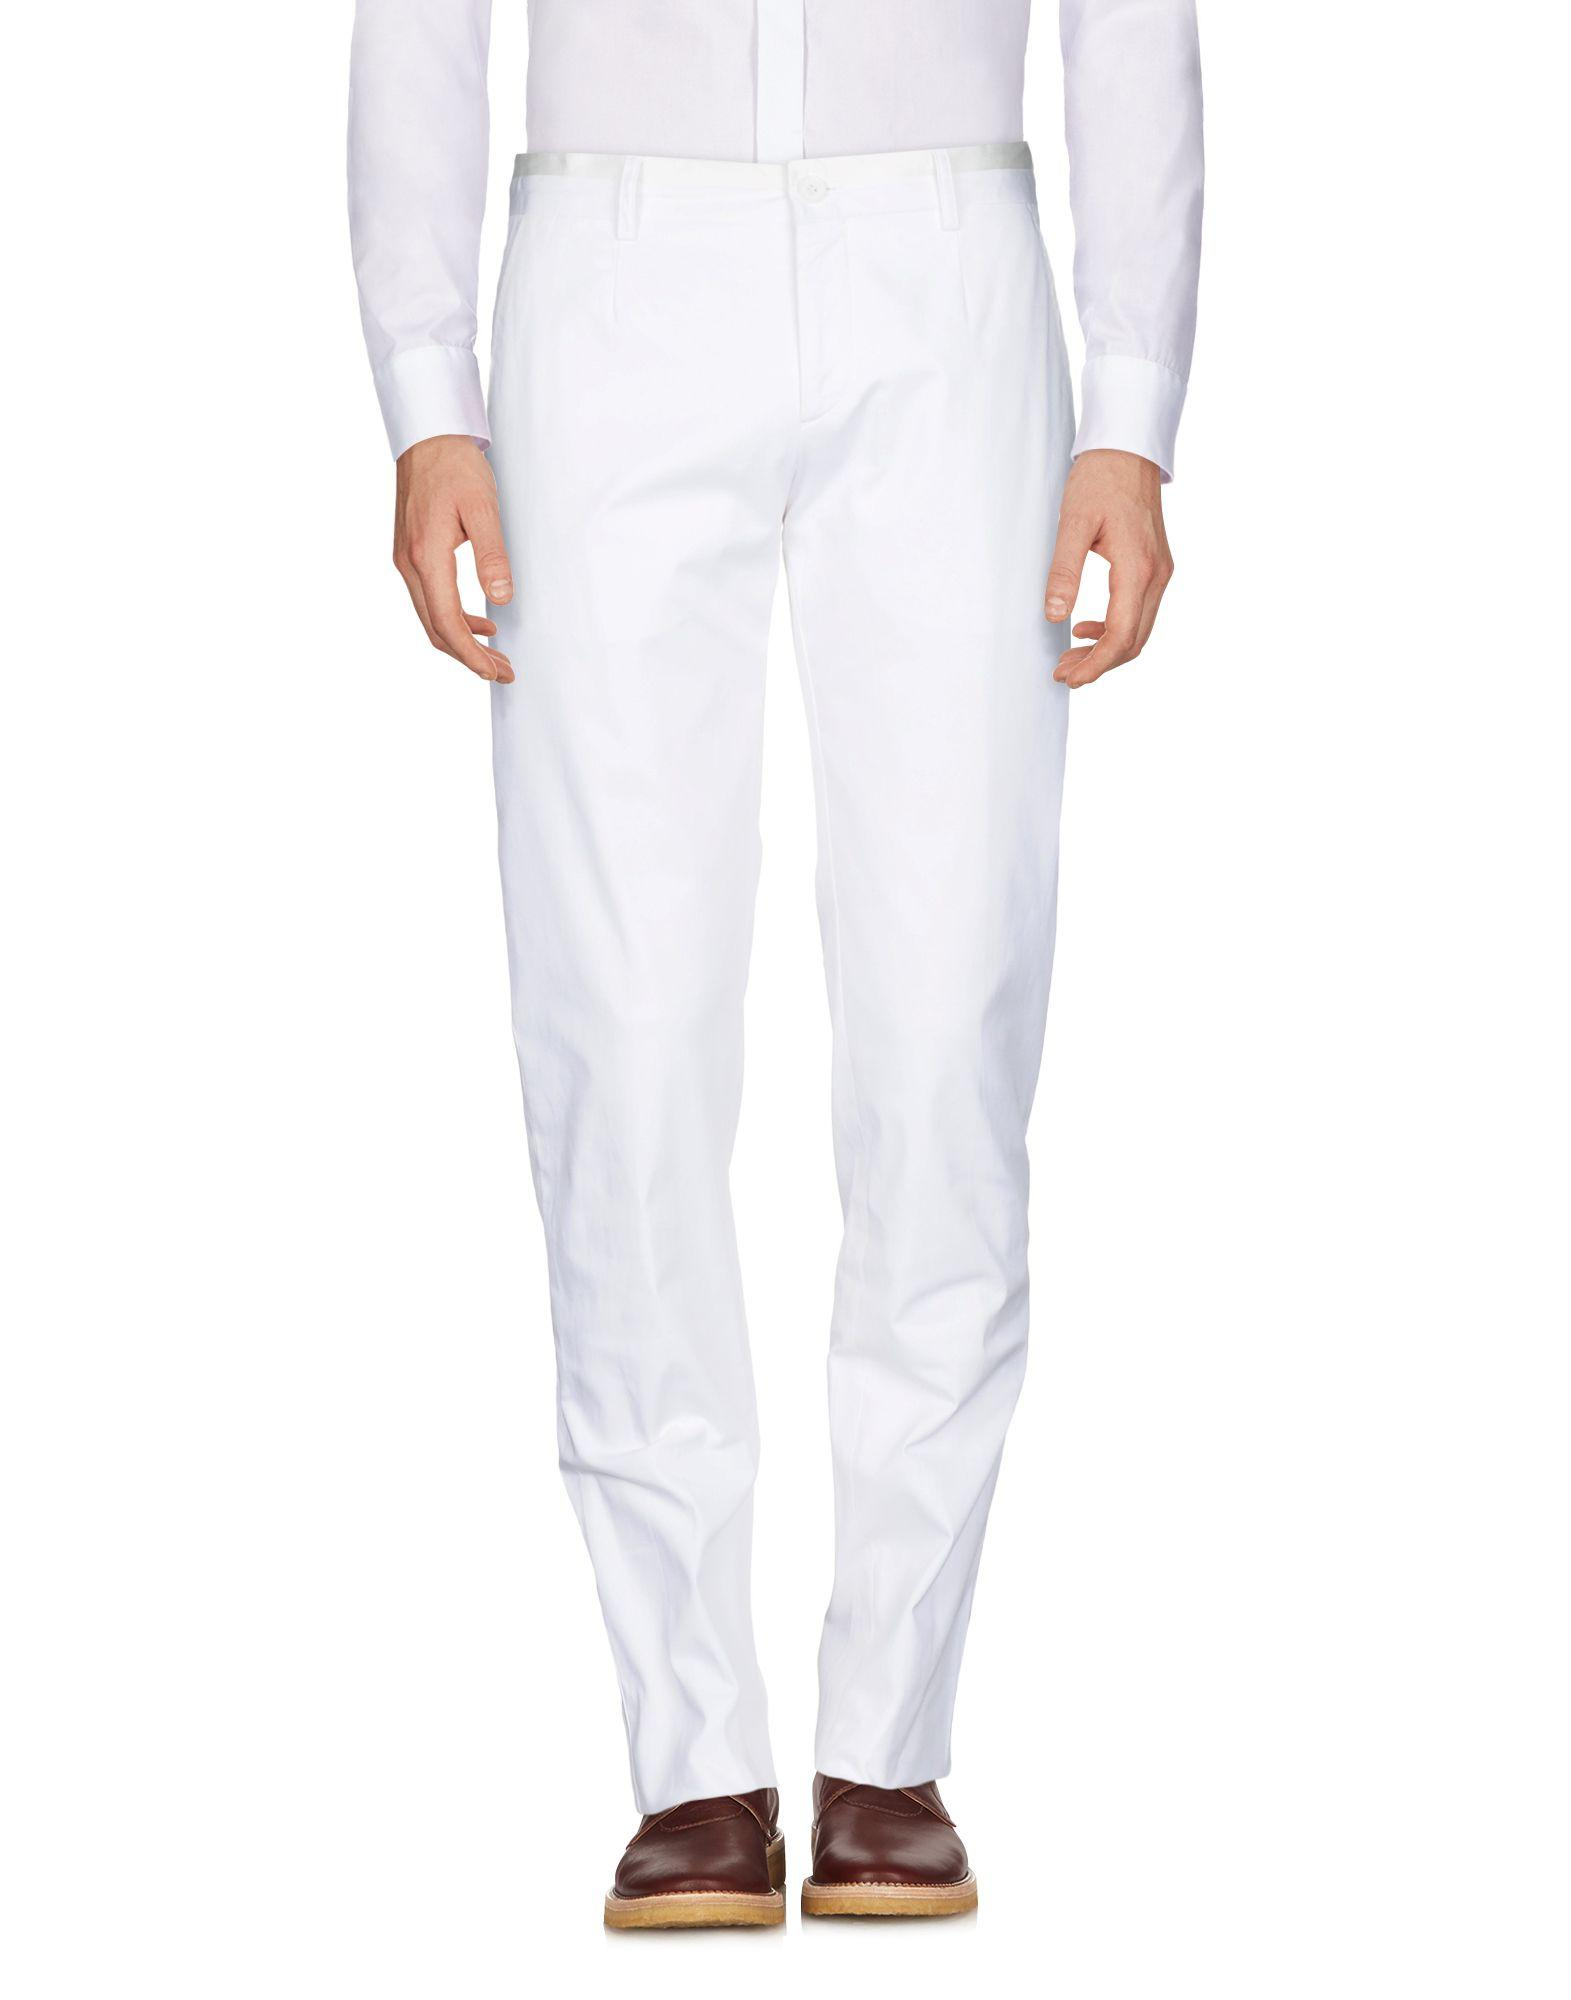 Bikkembergs Casual Pants In White